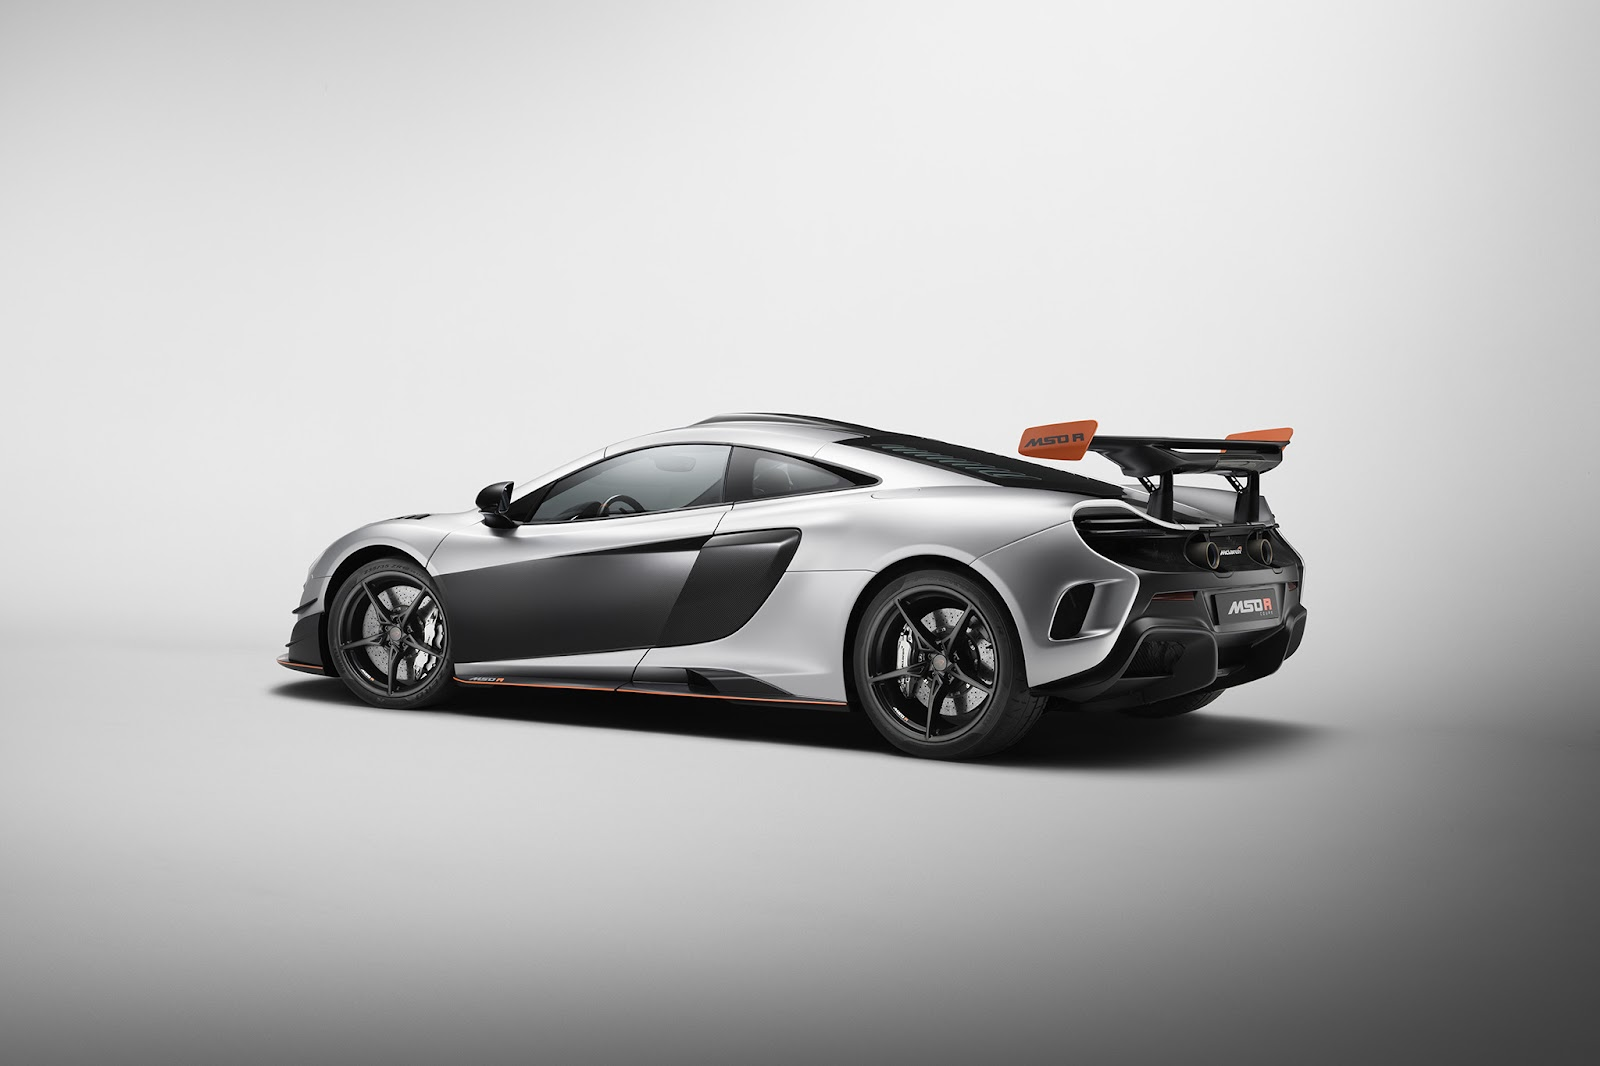 McLaren-MSO-R-Coupe-Rear-Three-Quarters.jpg